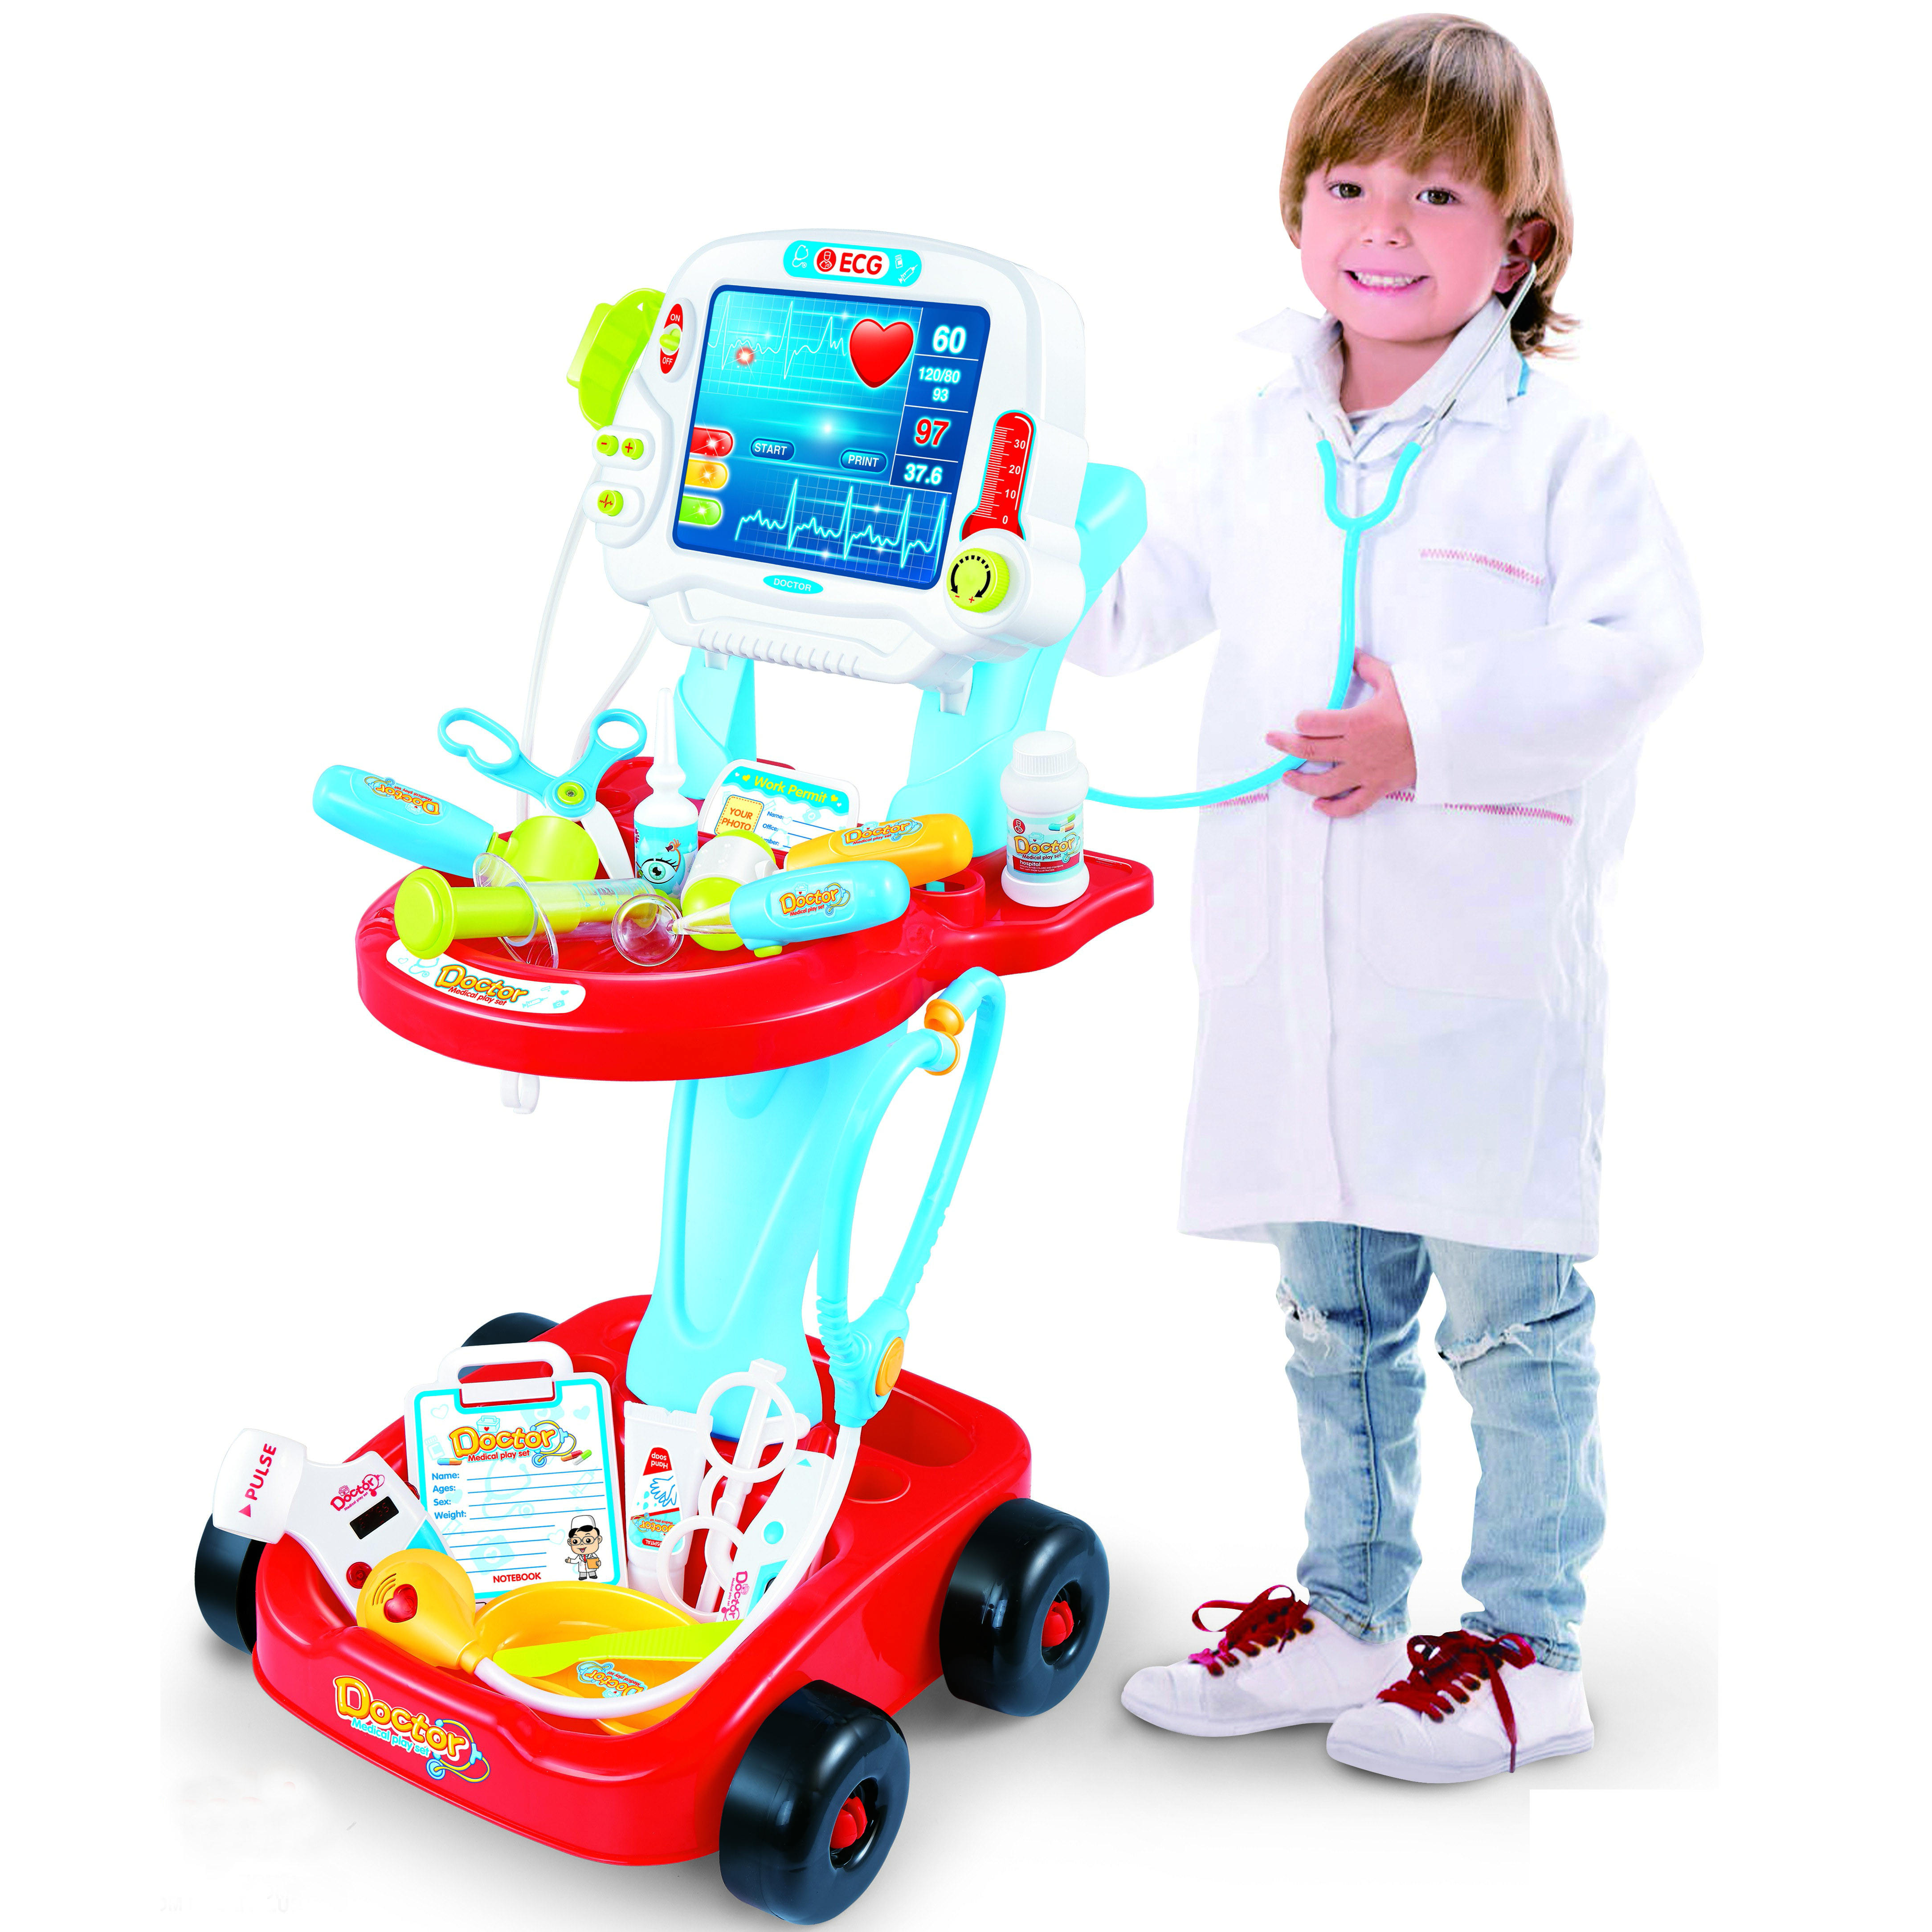 Children Electronic Plastic Musical Pretend Learning Toy Educational Doctor Toys Kit For Kids 2020